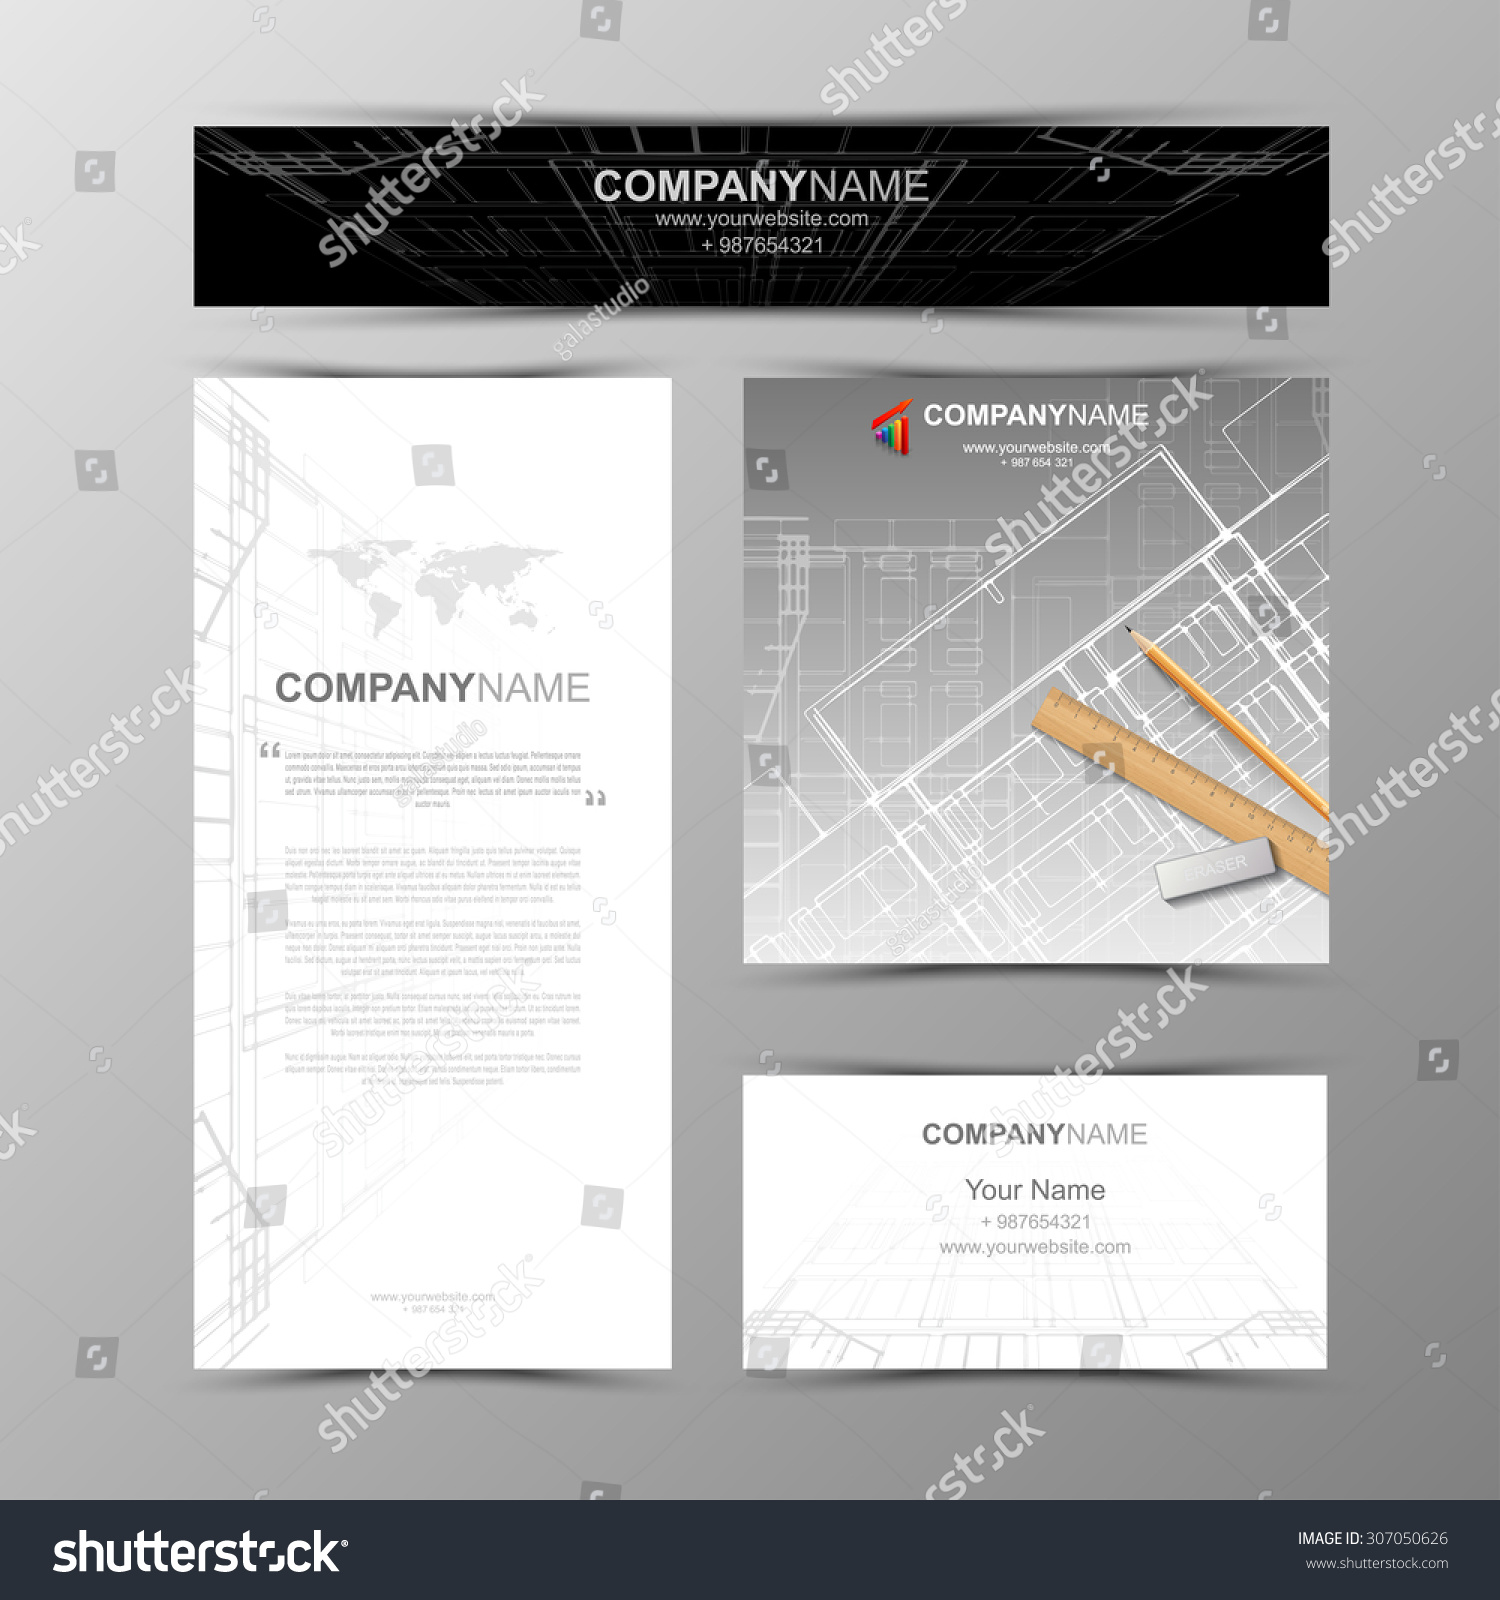 Business Cards Design Cityscape Sketch Architectural Stock Vector ...